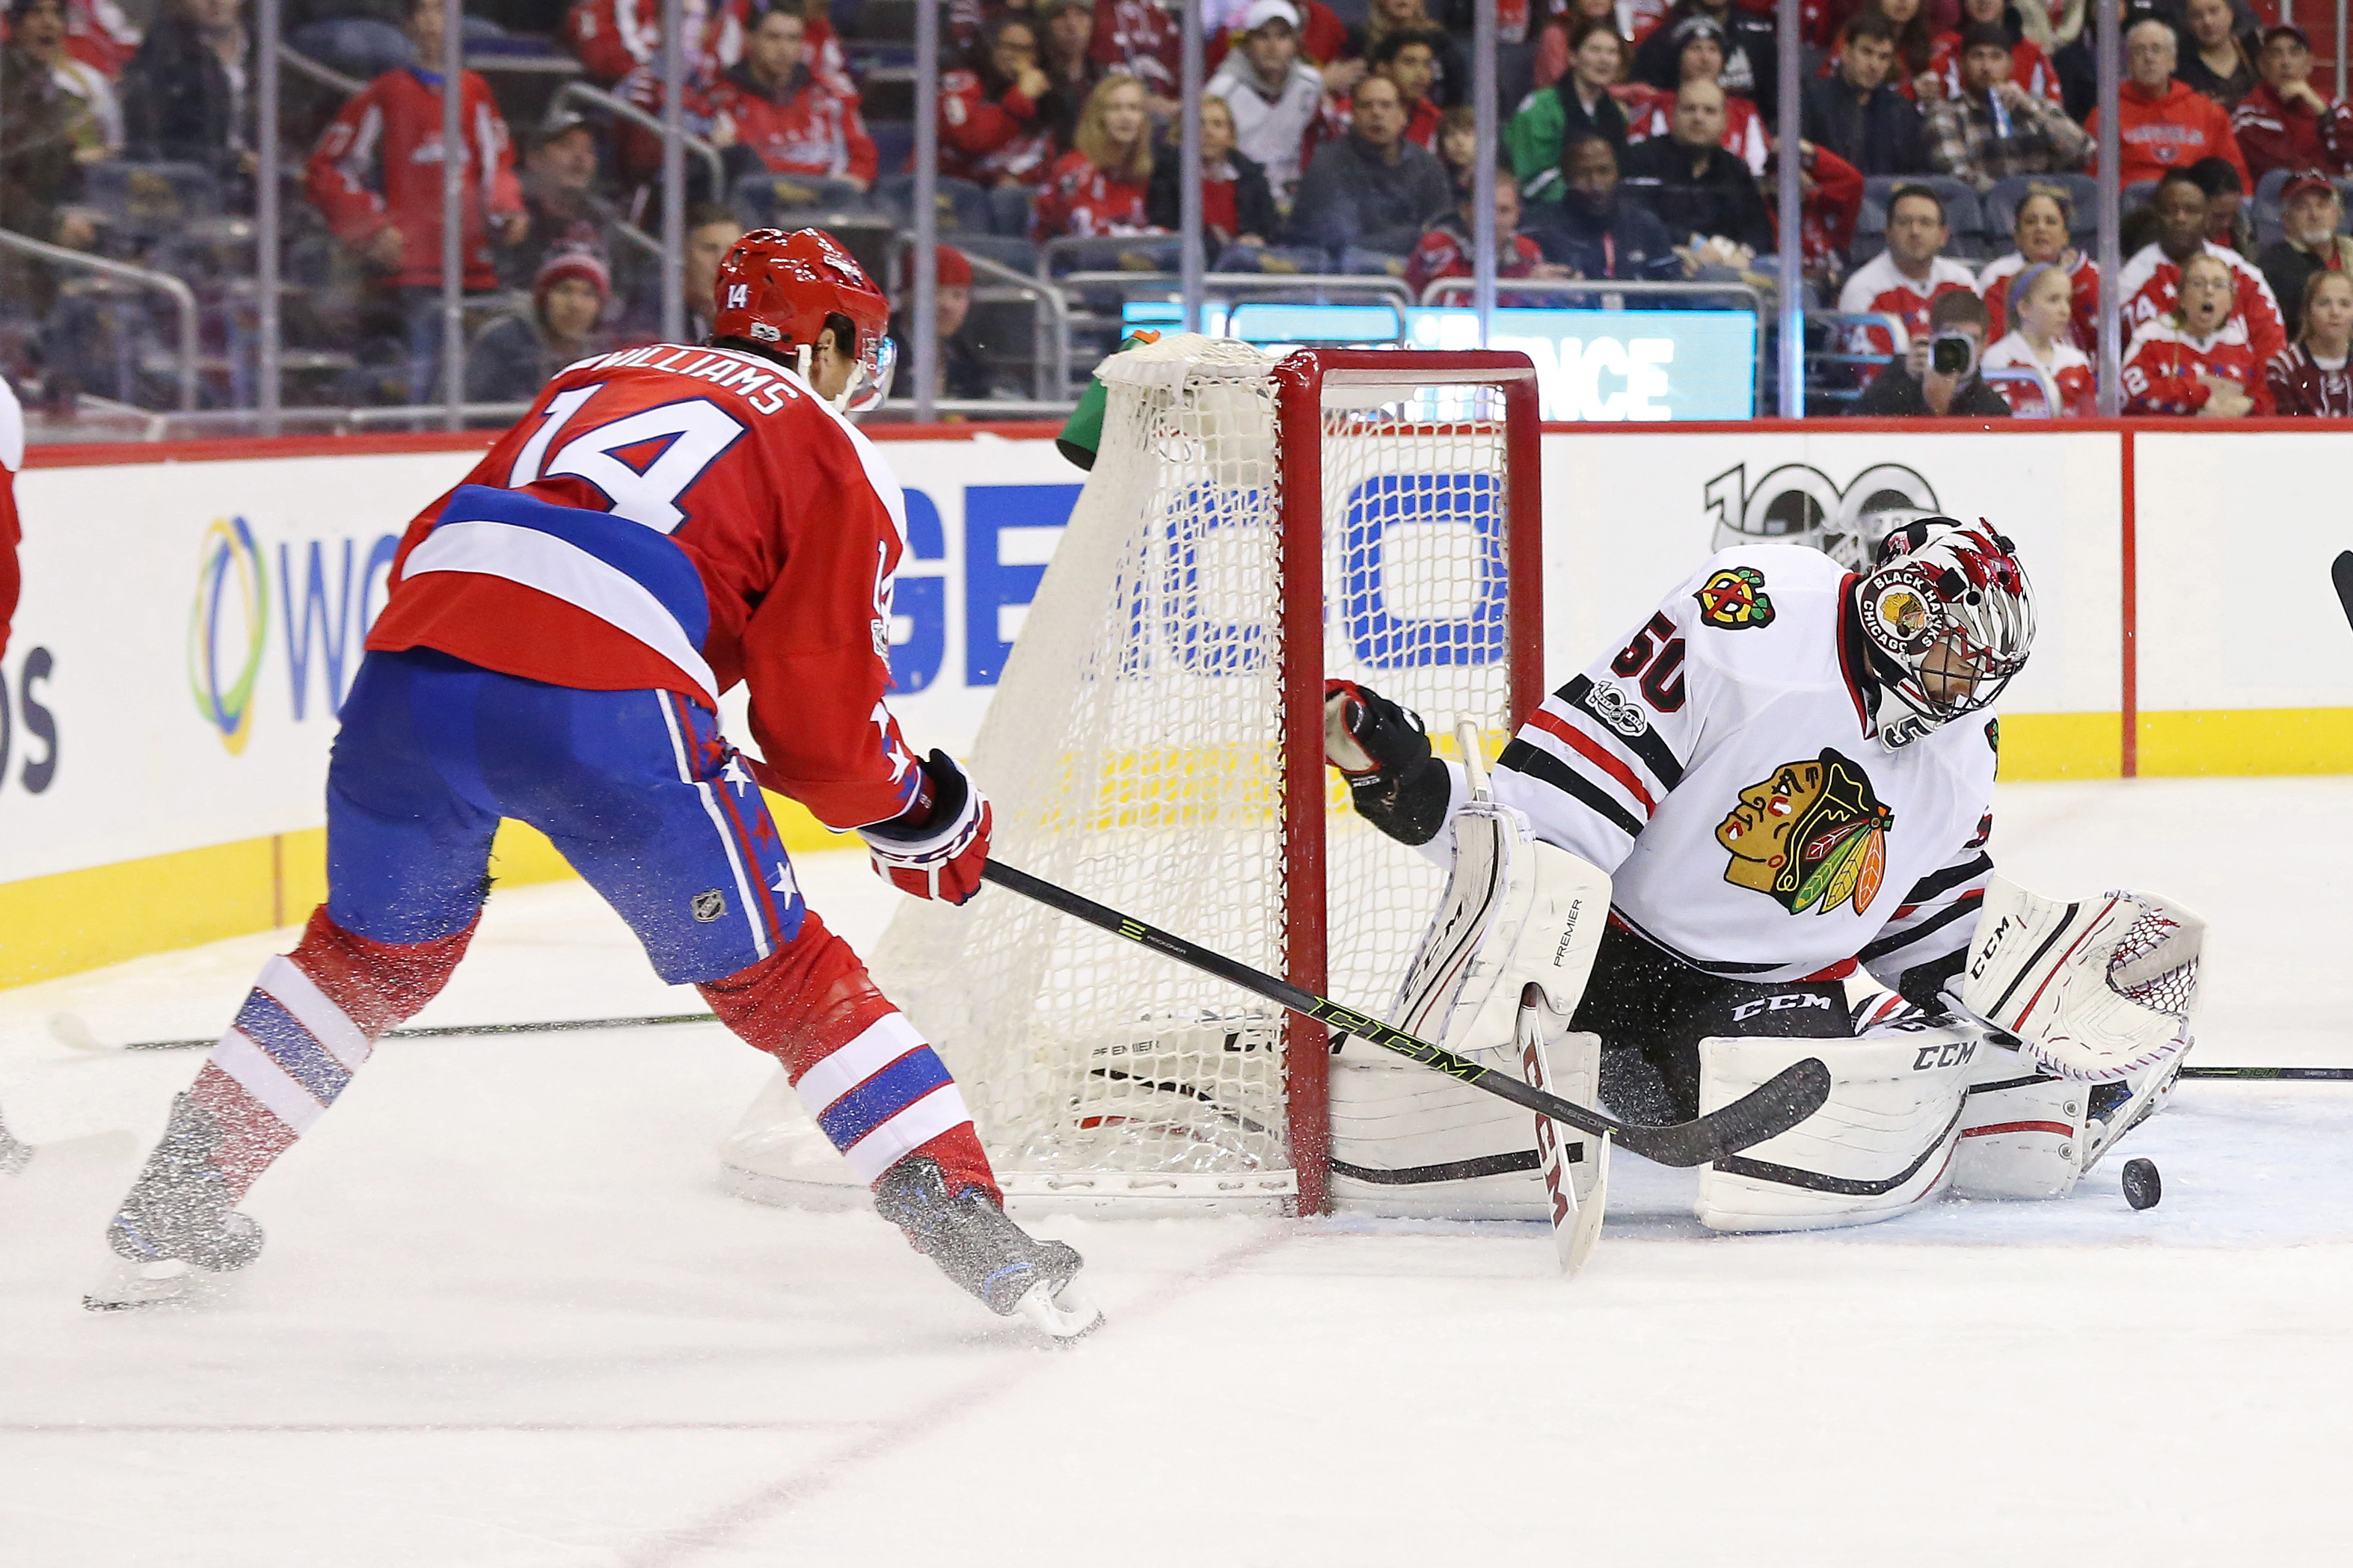 9808304-nhl-chicago-blackhawks-at-washington-capitals